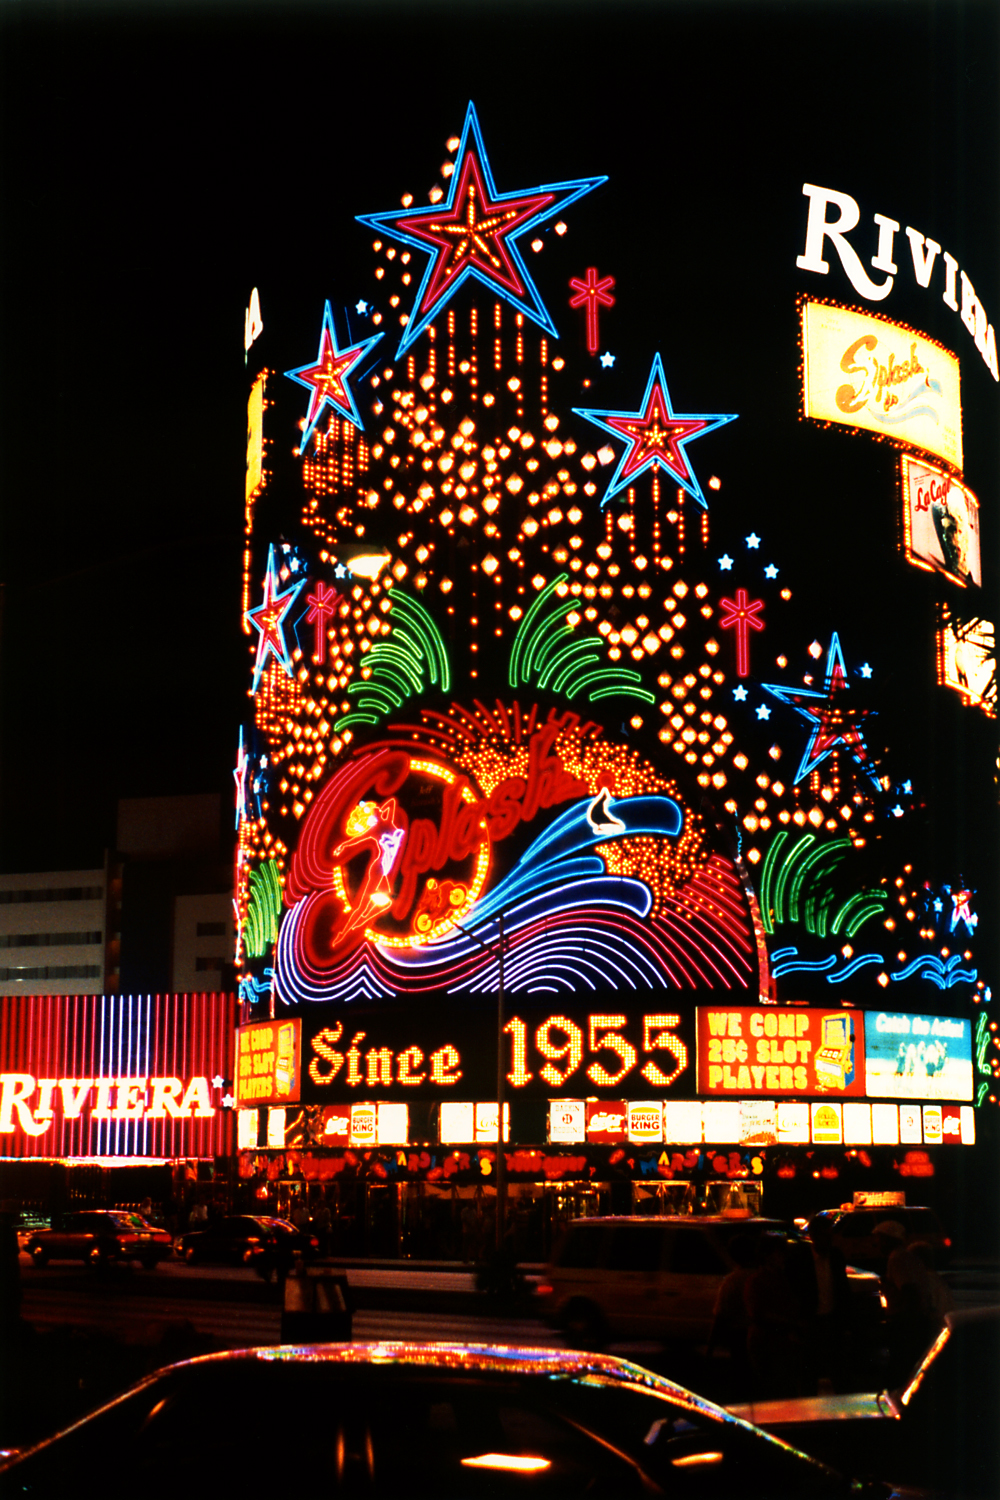 Riviera hotel sign las vegas flickr photo sharing for Riviera resort las vegas